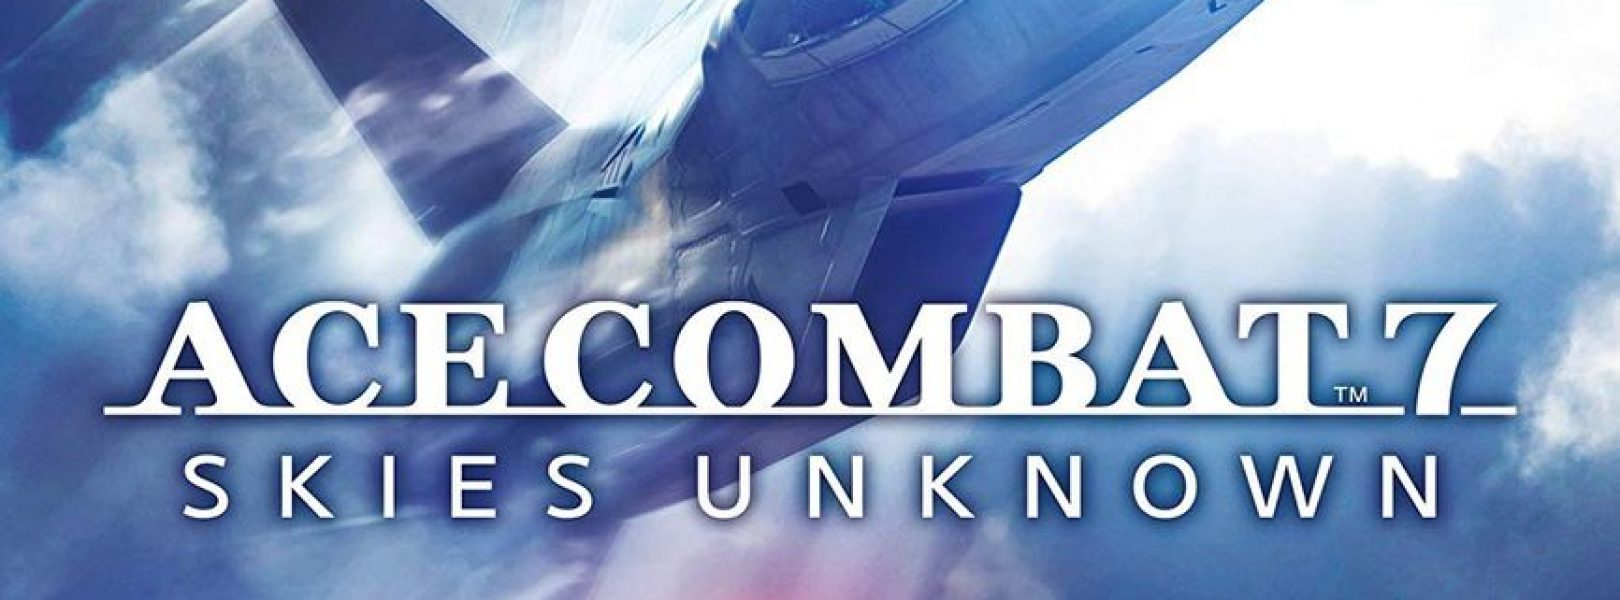 Ace Combat 7: Skies Unknown – Capsule Computers